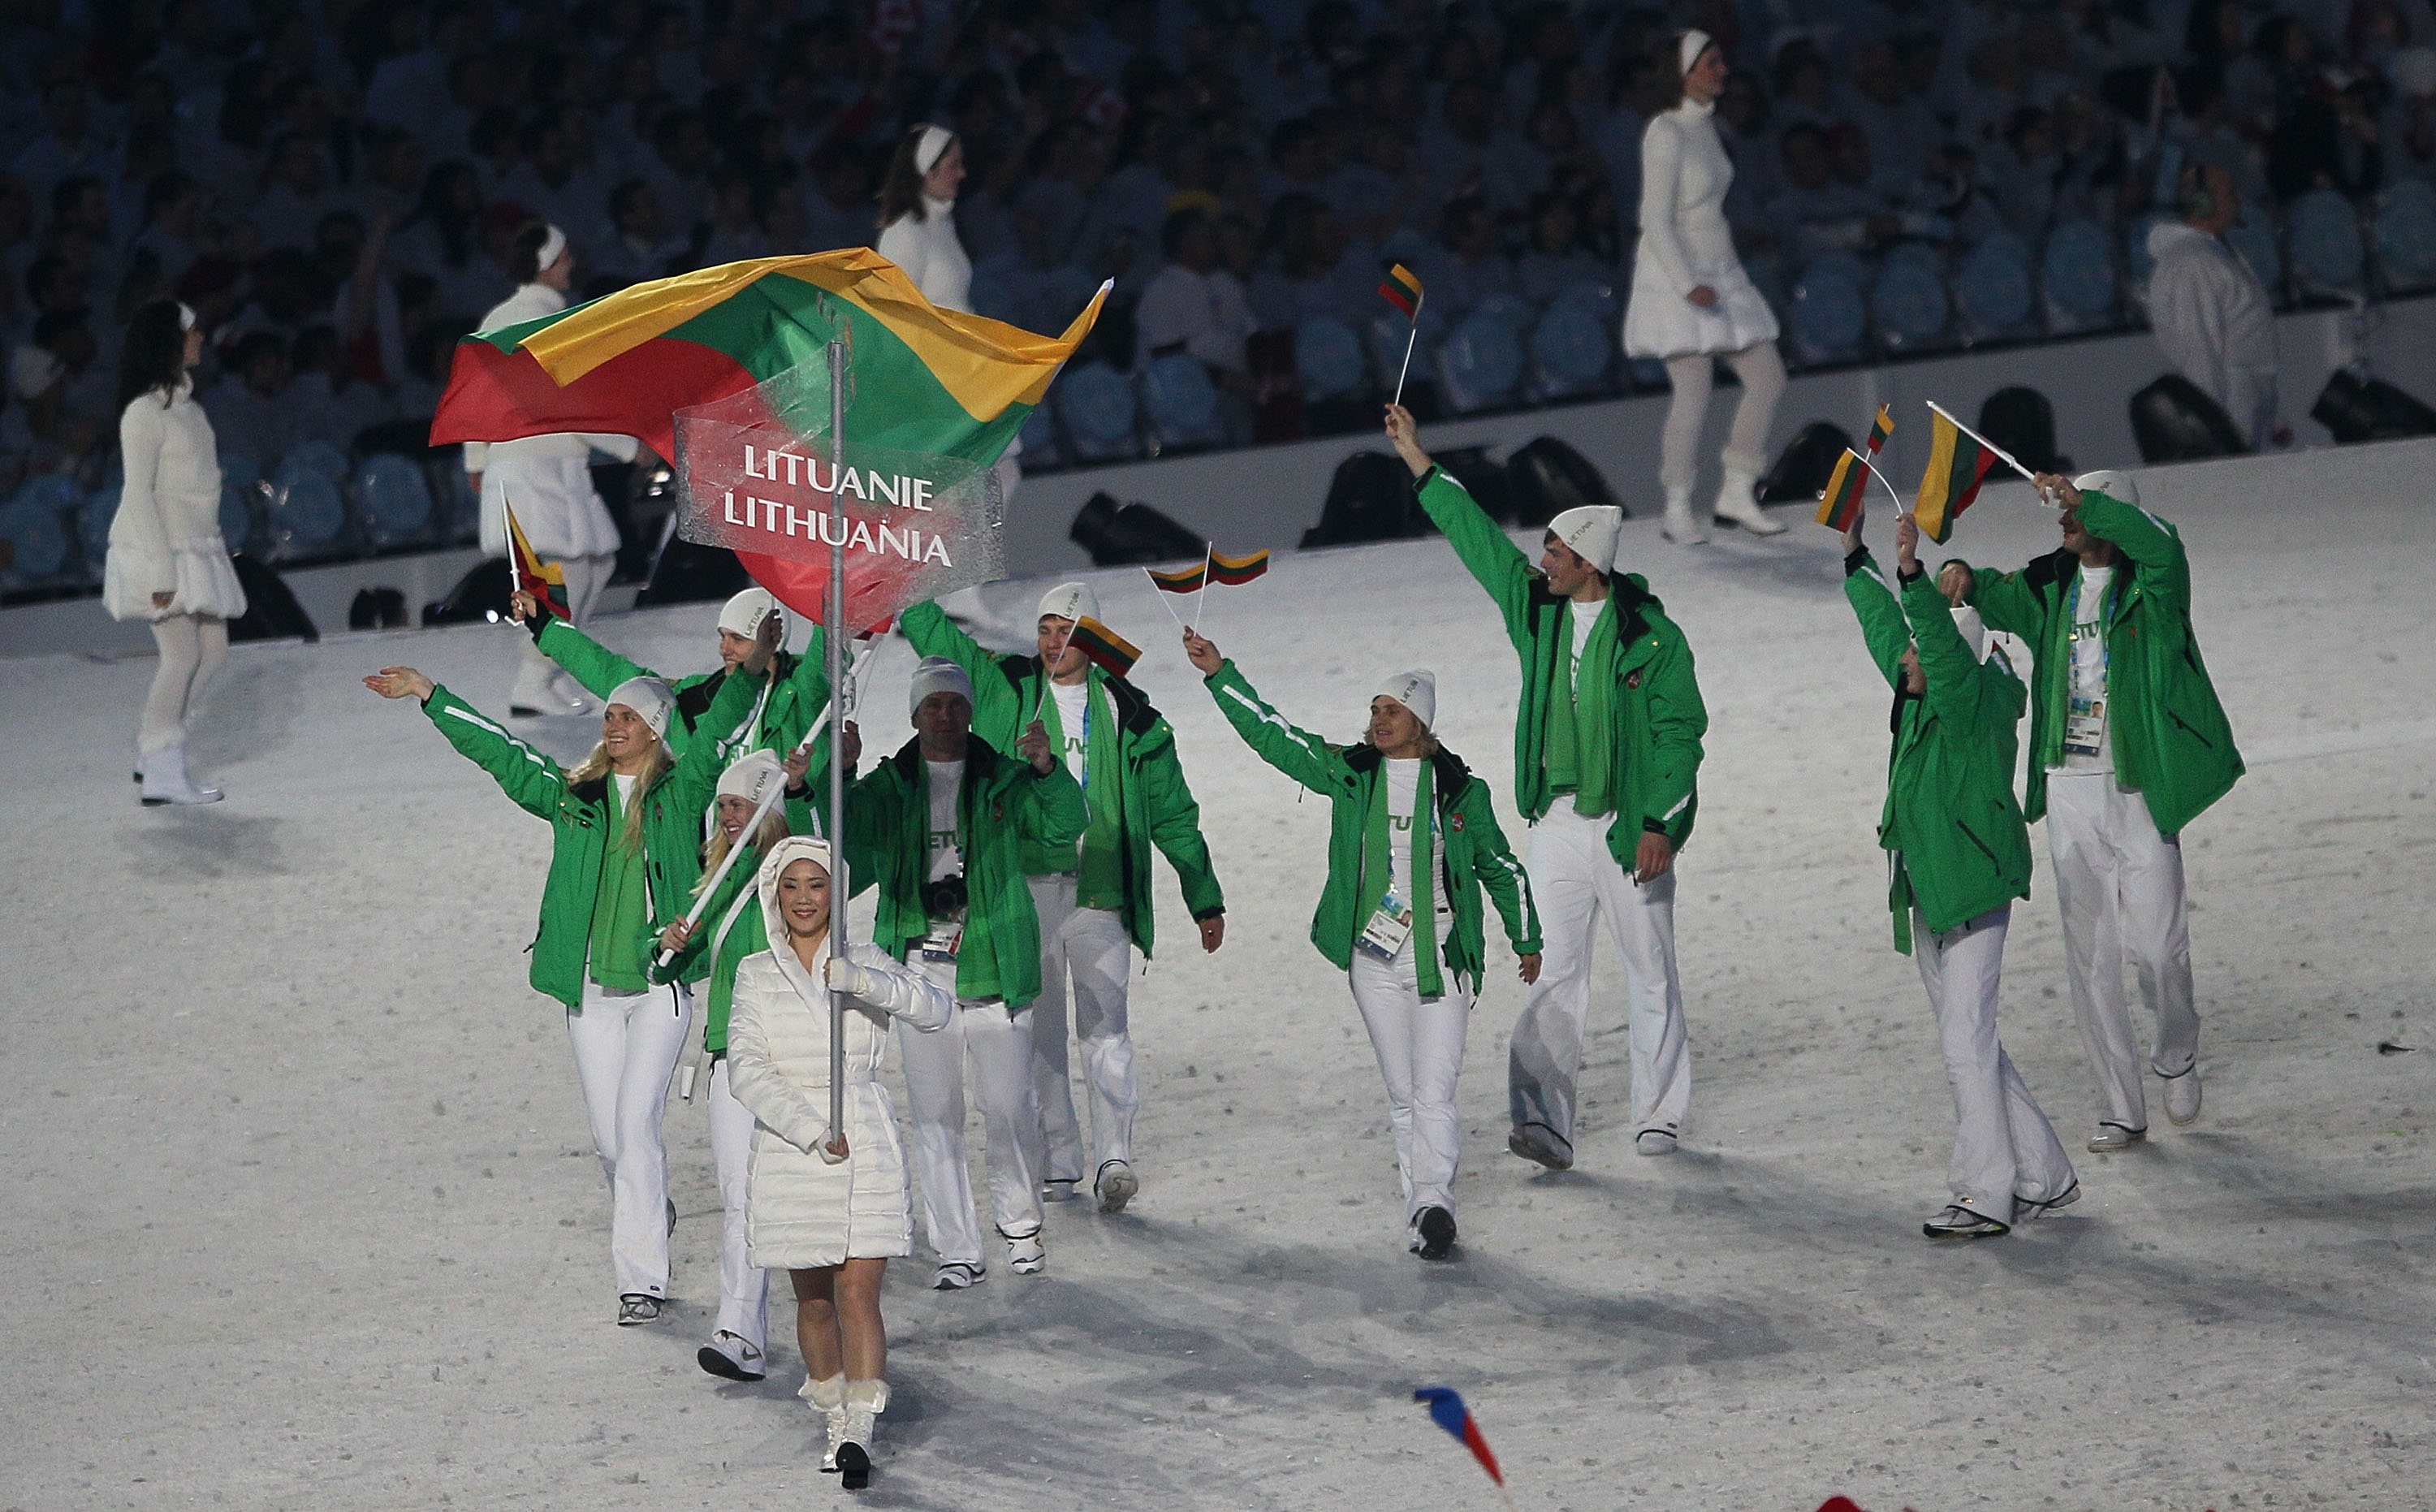 VANCOUVER, BC - FEBRUARY 12:  Irina Terentjeva of Lithuania carries the flag during the Opening Ceremony of the 2010 Vancouver Winter Olympics at BC Place on February 12, 2010 in Vancouver, Canada.  (Photo by Bruce Bennett/Getty Images)